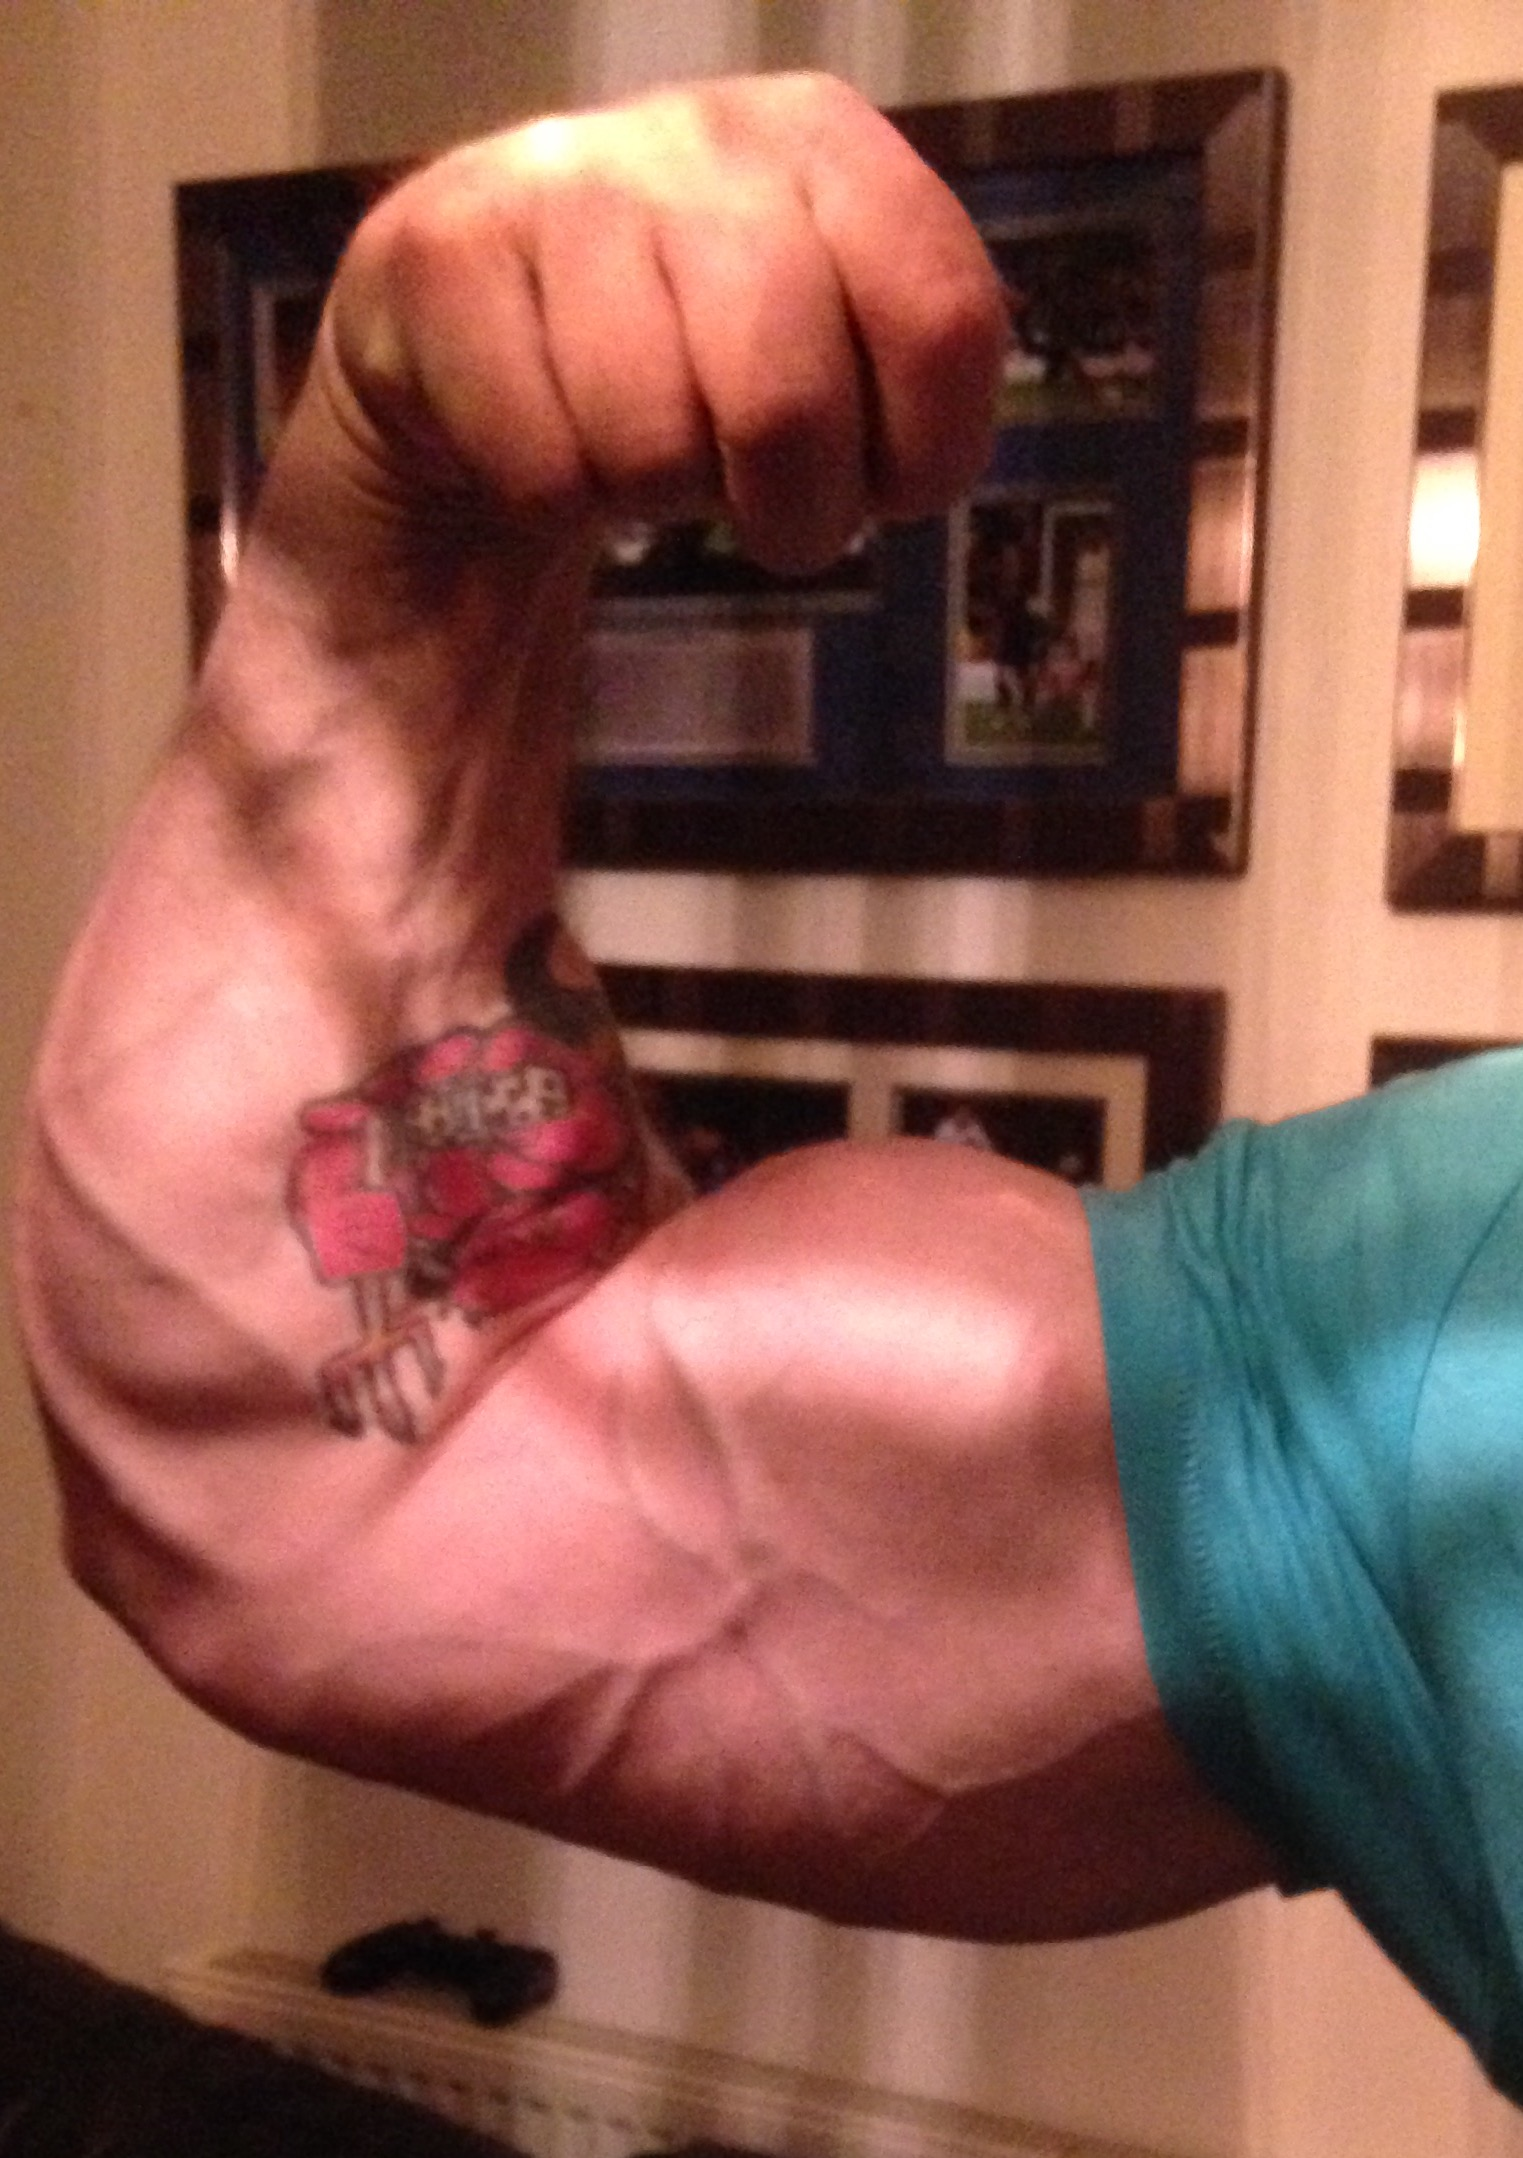 Painless pumps synthol or not? - AnabolicMinds com